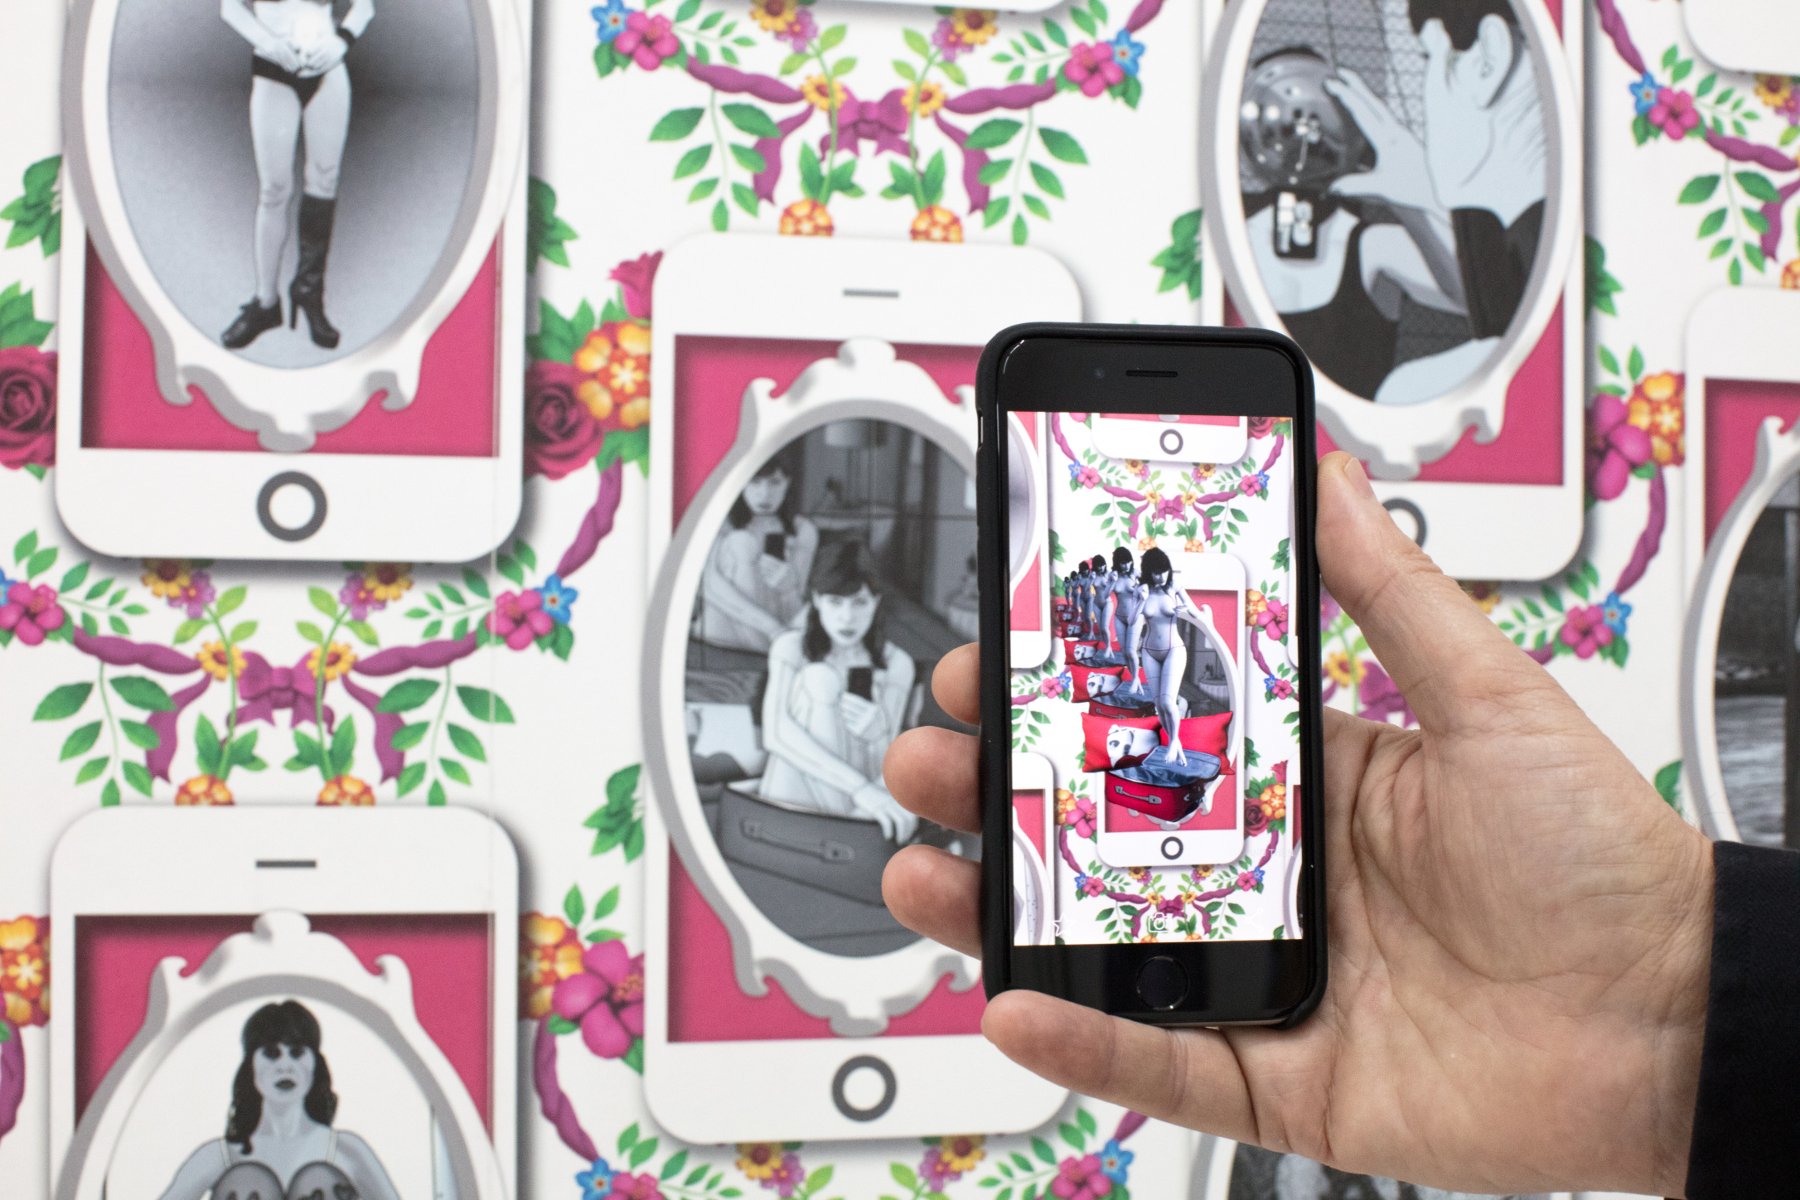 Carla Gannis, The Selfie Wallpaper, Tapete und Augmented Reality, 2017